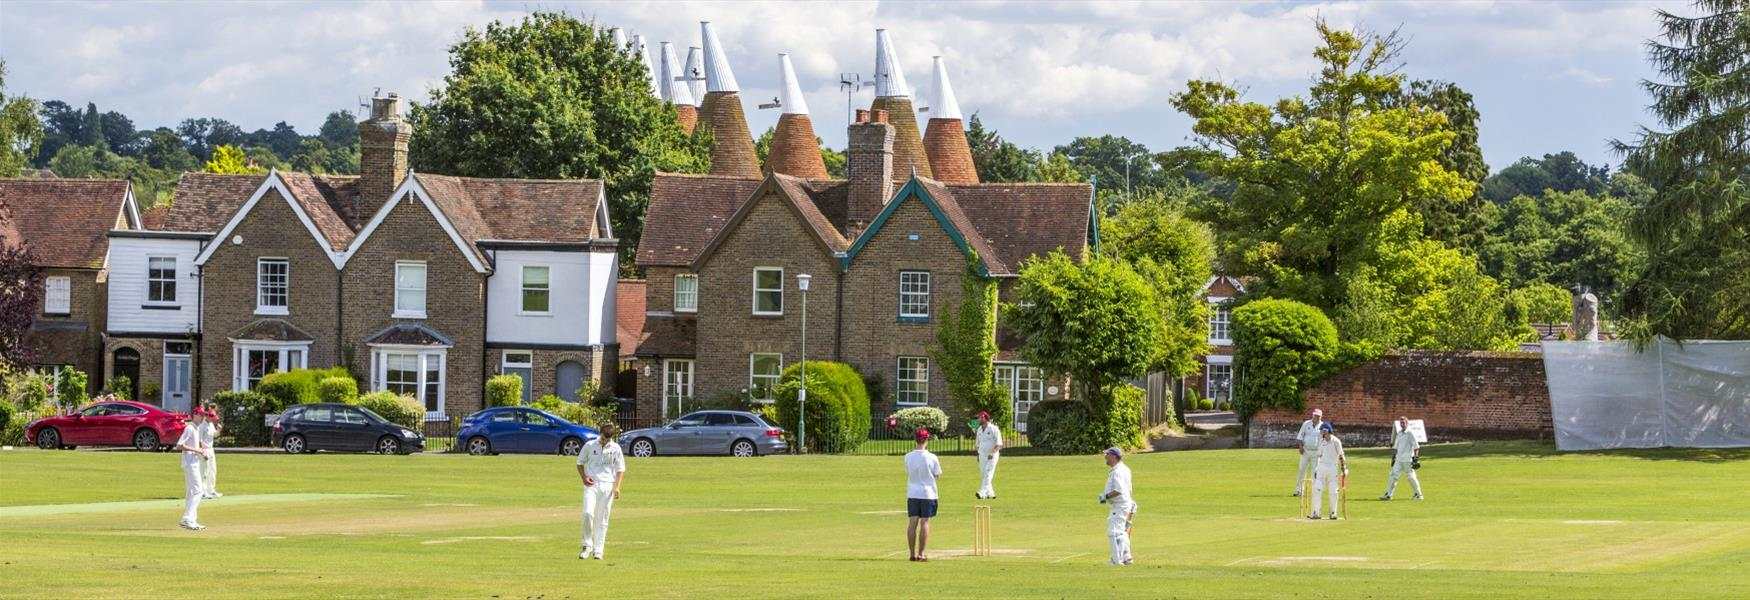 Cricket on Bearsted Green